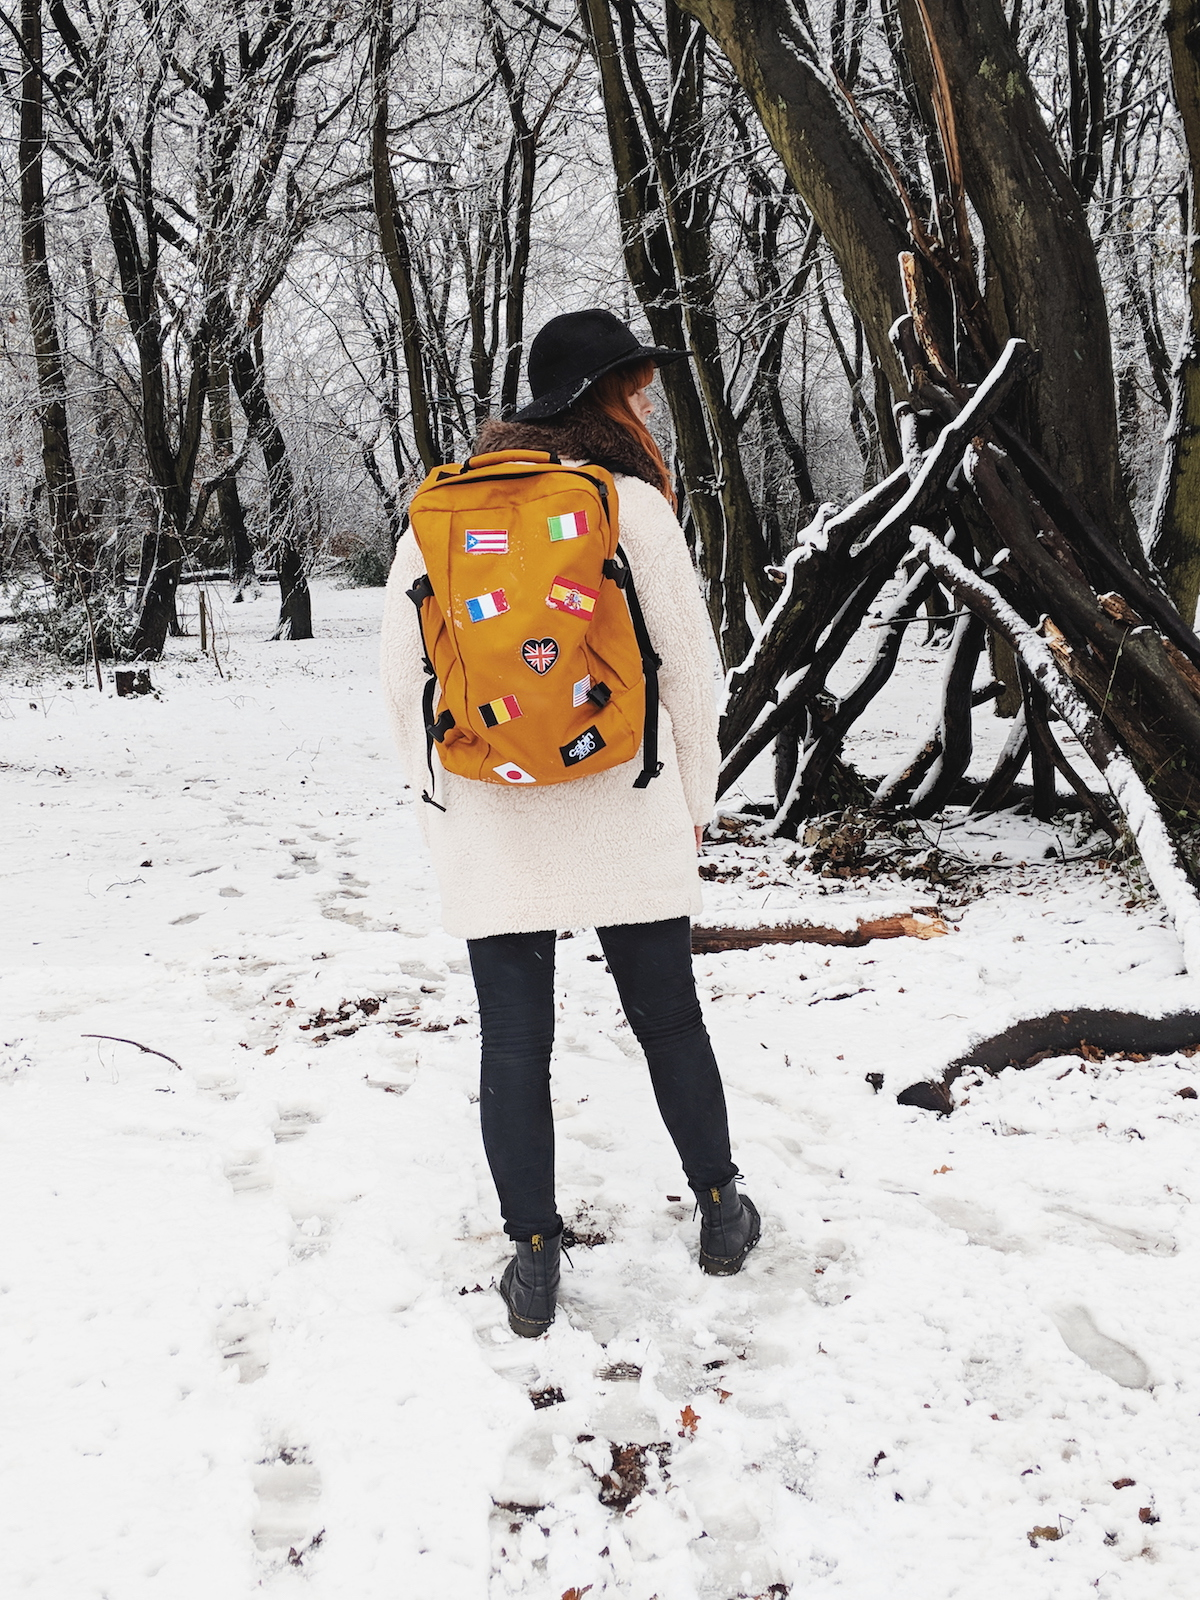 Travel blogger, Leigh Travers, walks amongst a snowy forest scene with her Cabin Zero rucksack. View of the bag worn face-on.